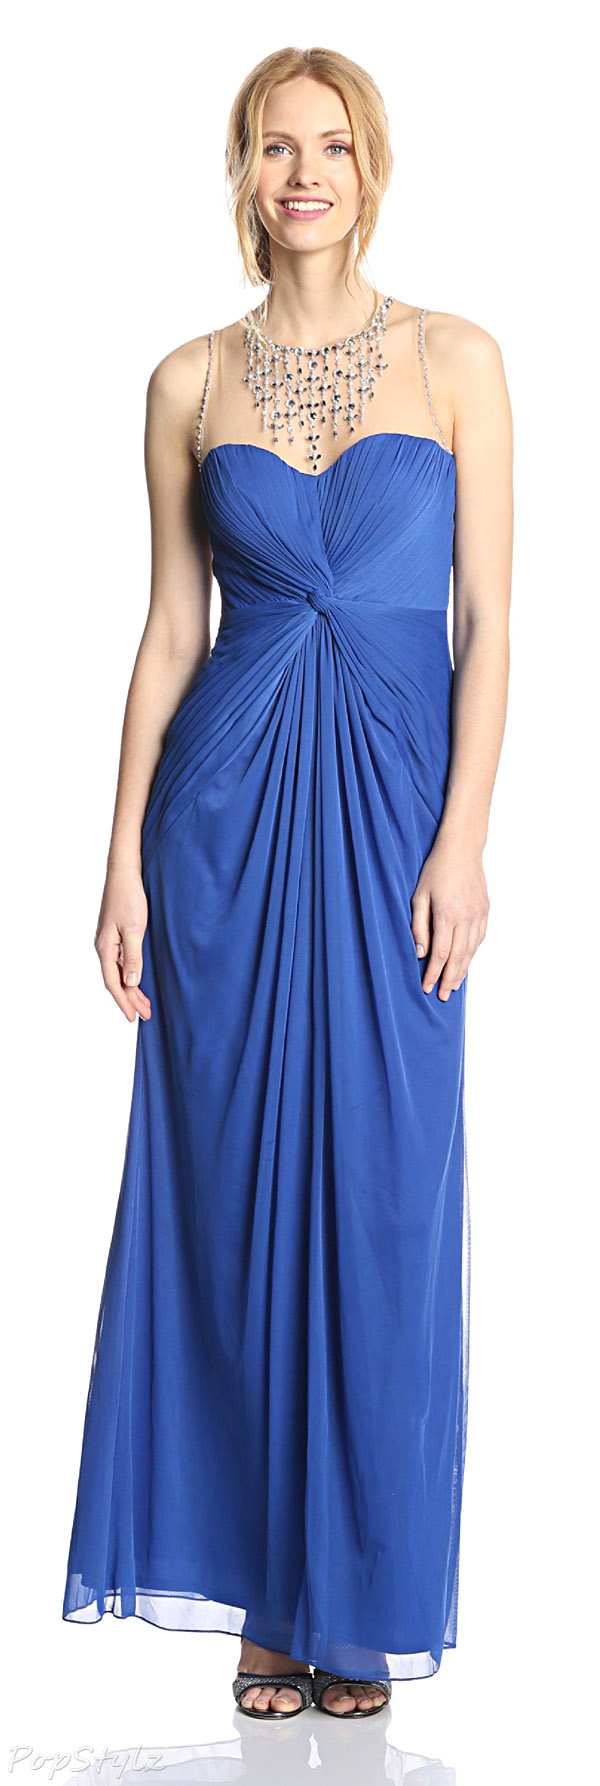 Adrianna Papell French Blue Necklace Gown